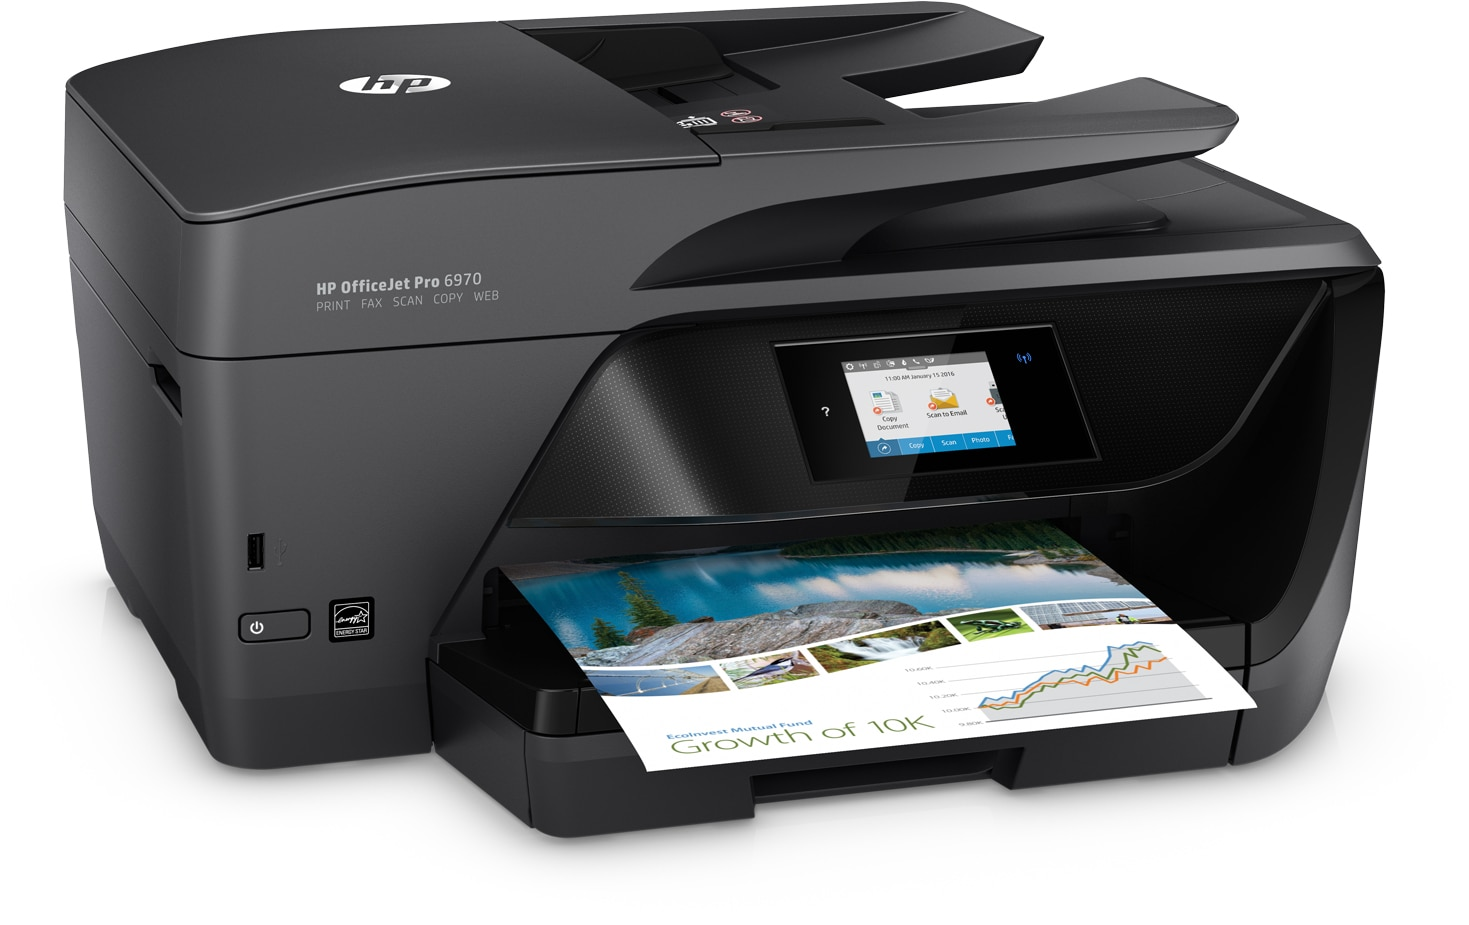 Can't connect 6900 series hp all in one printer to myvista h.